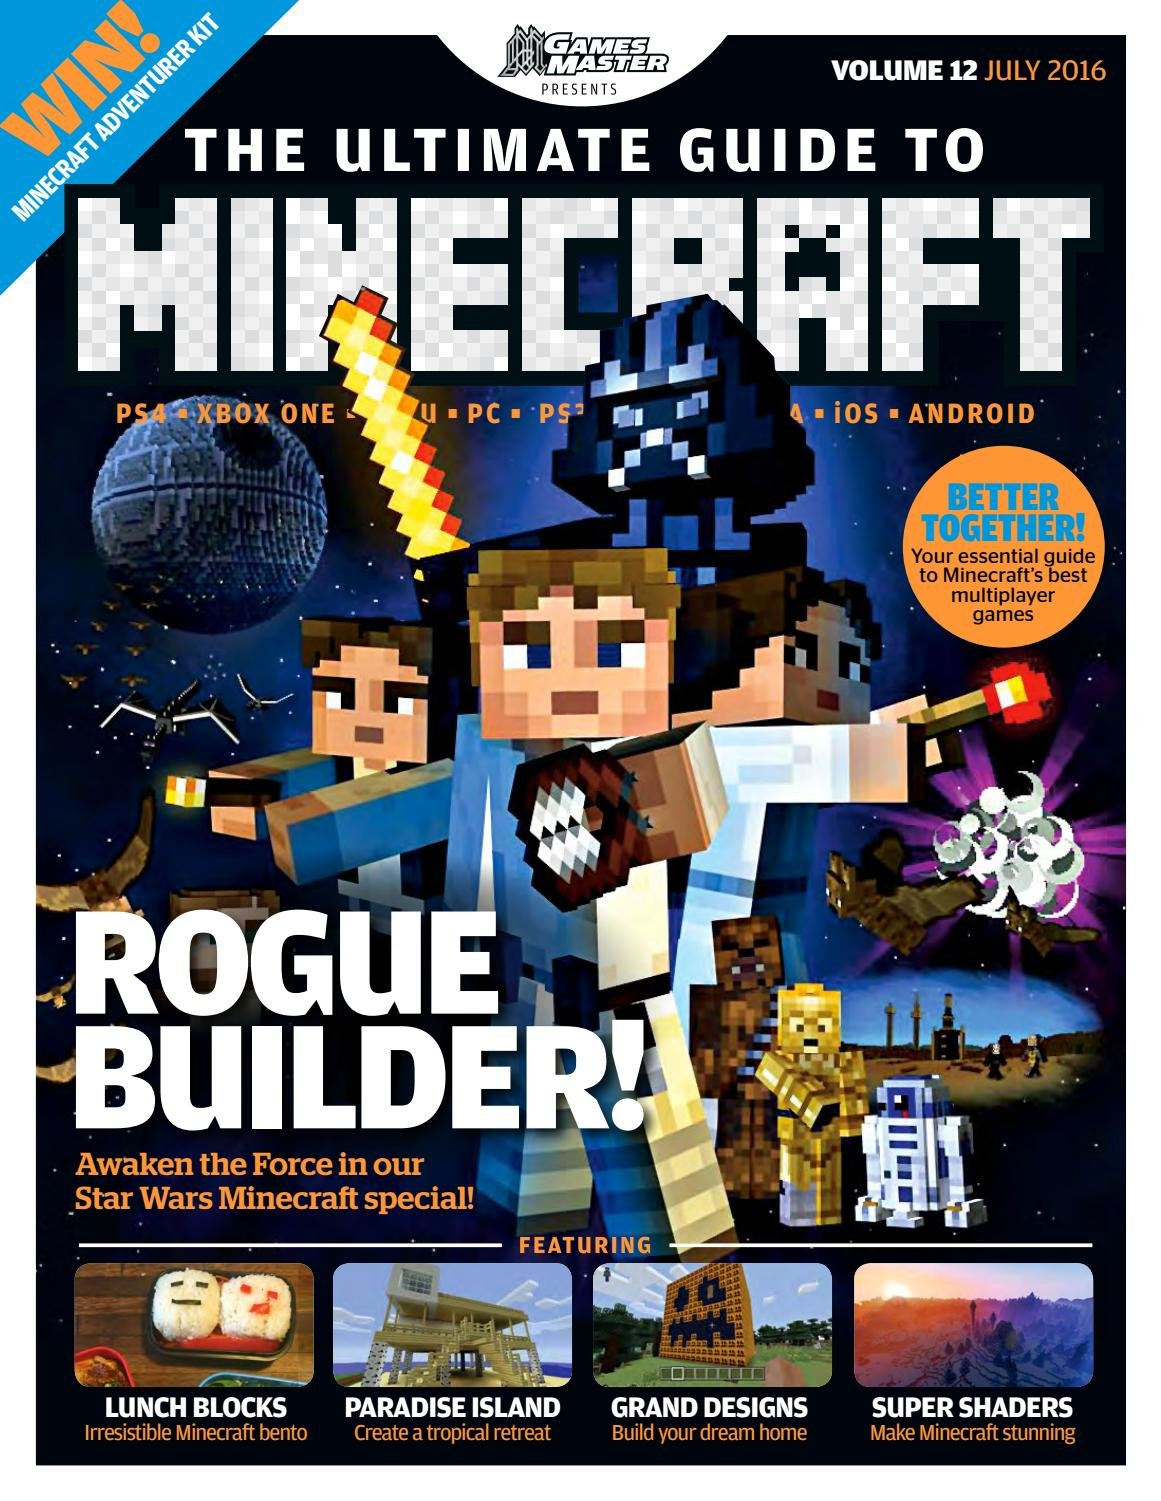 GamesMaster Presents: The Ultimate Guide to Minecraft Vol.12 (July 2016)